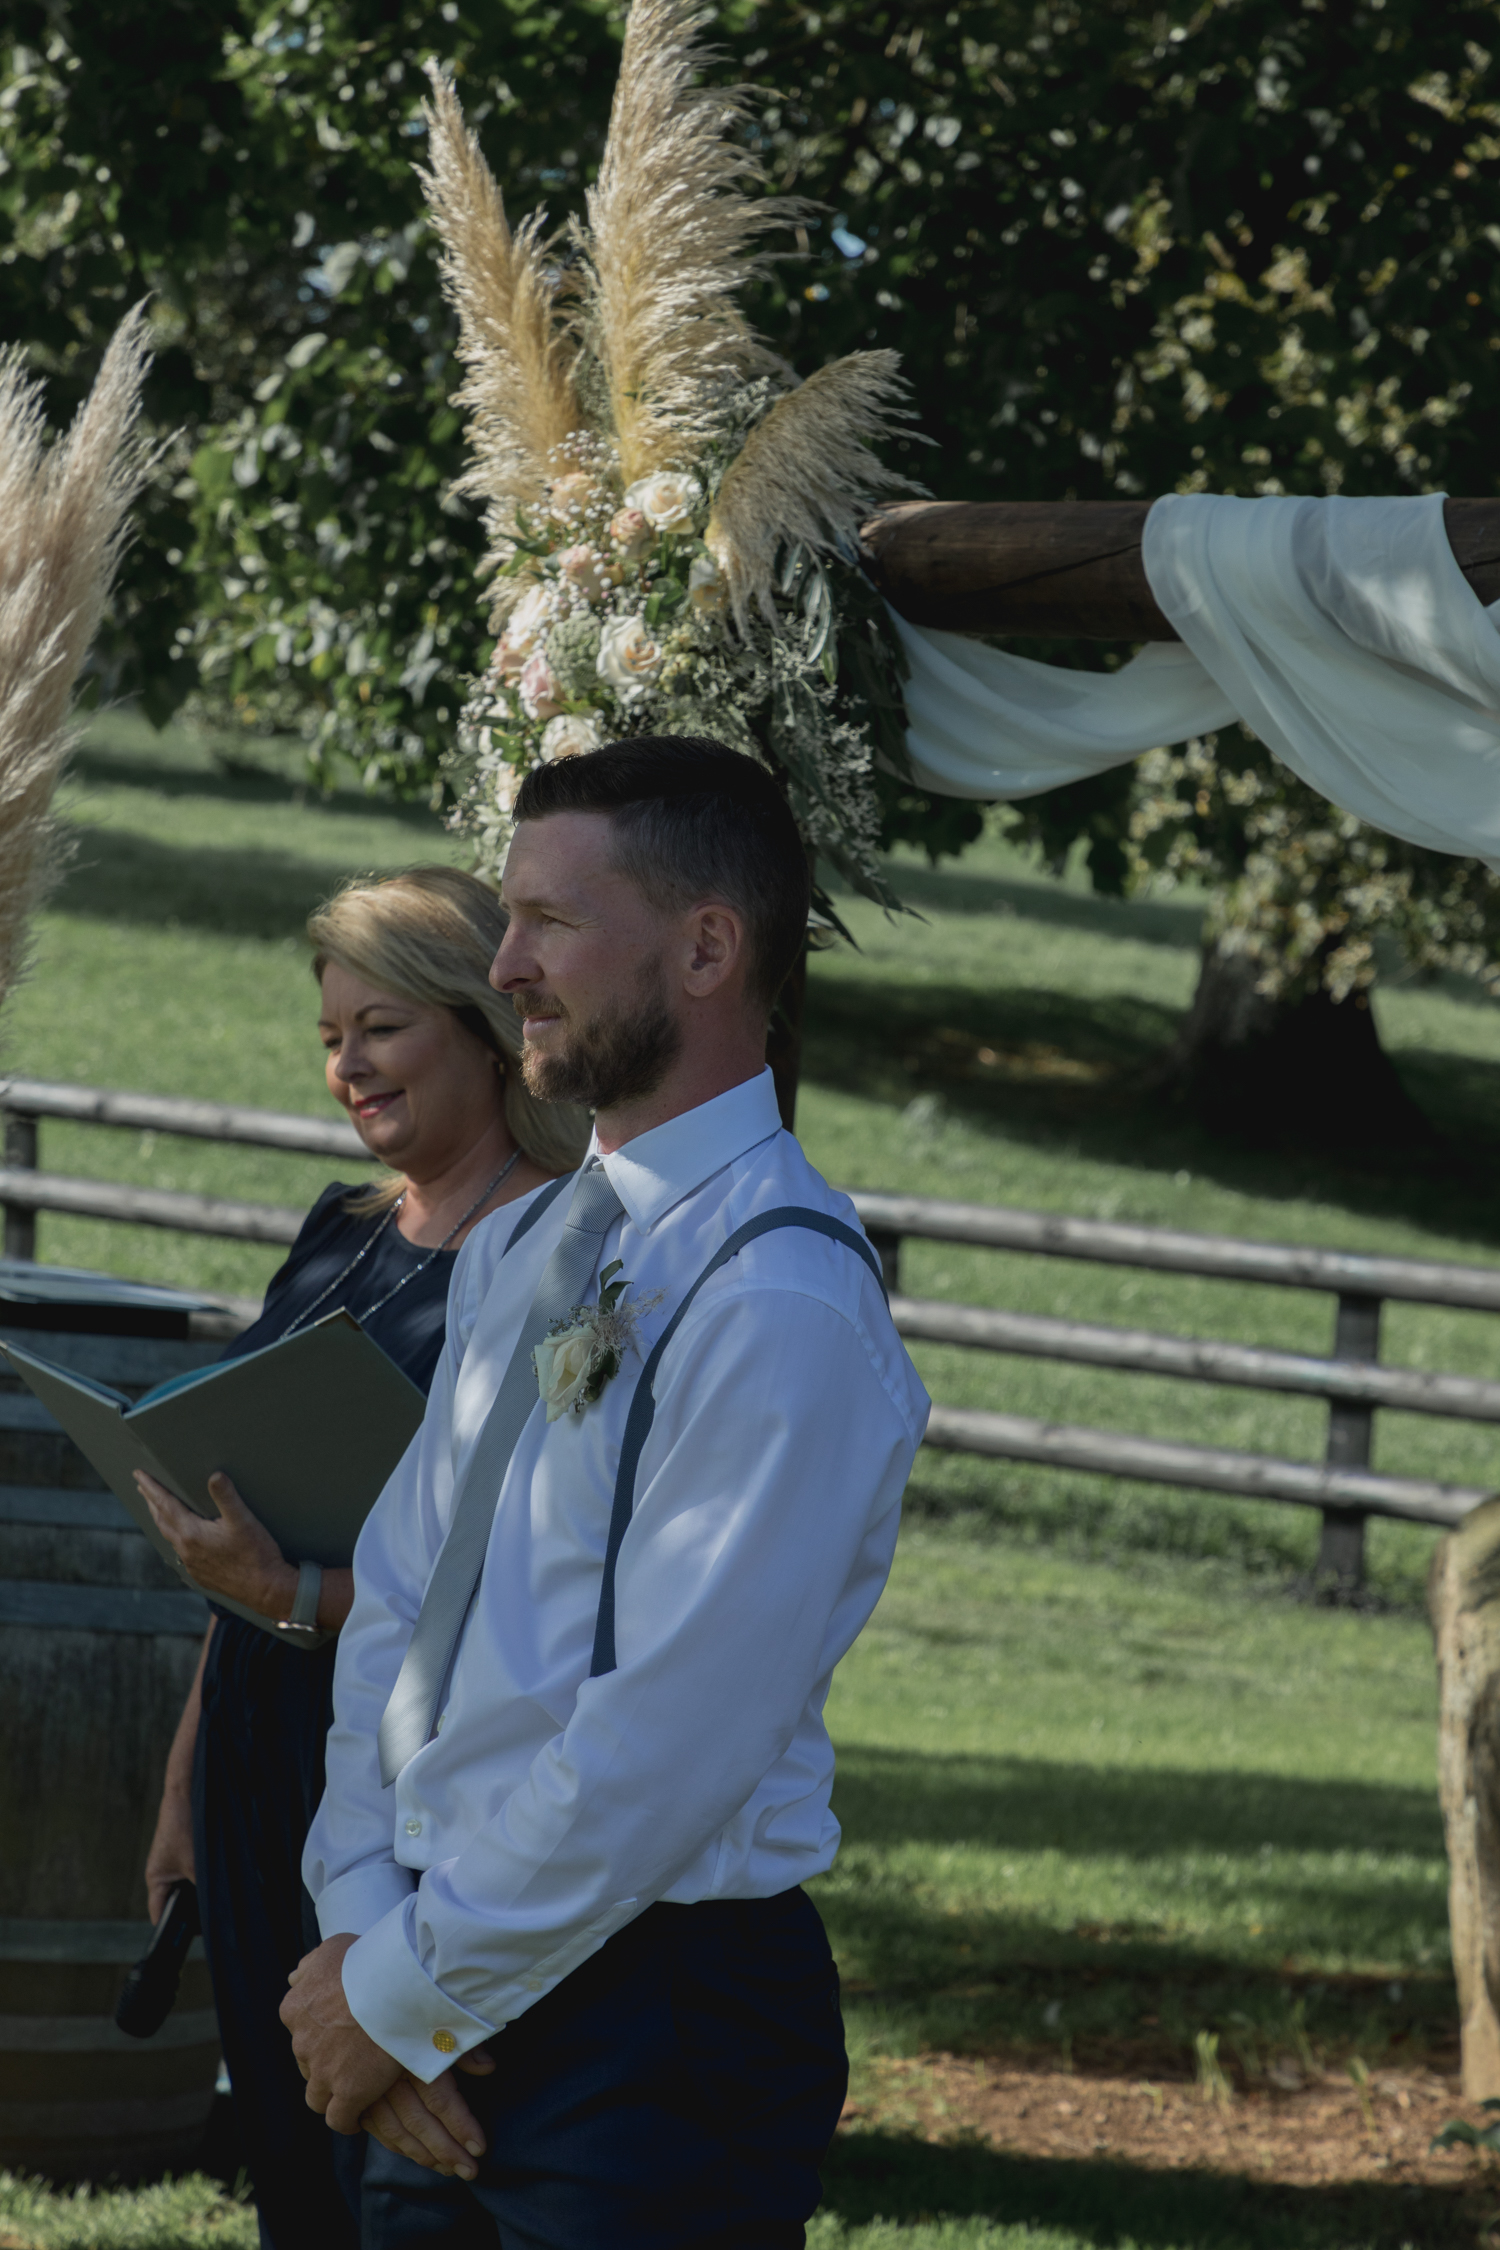 wedding-at-the-red-barn-new-zealand-wedding-photographer-groom-waiting-for-bride-at-the-alter.jpg